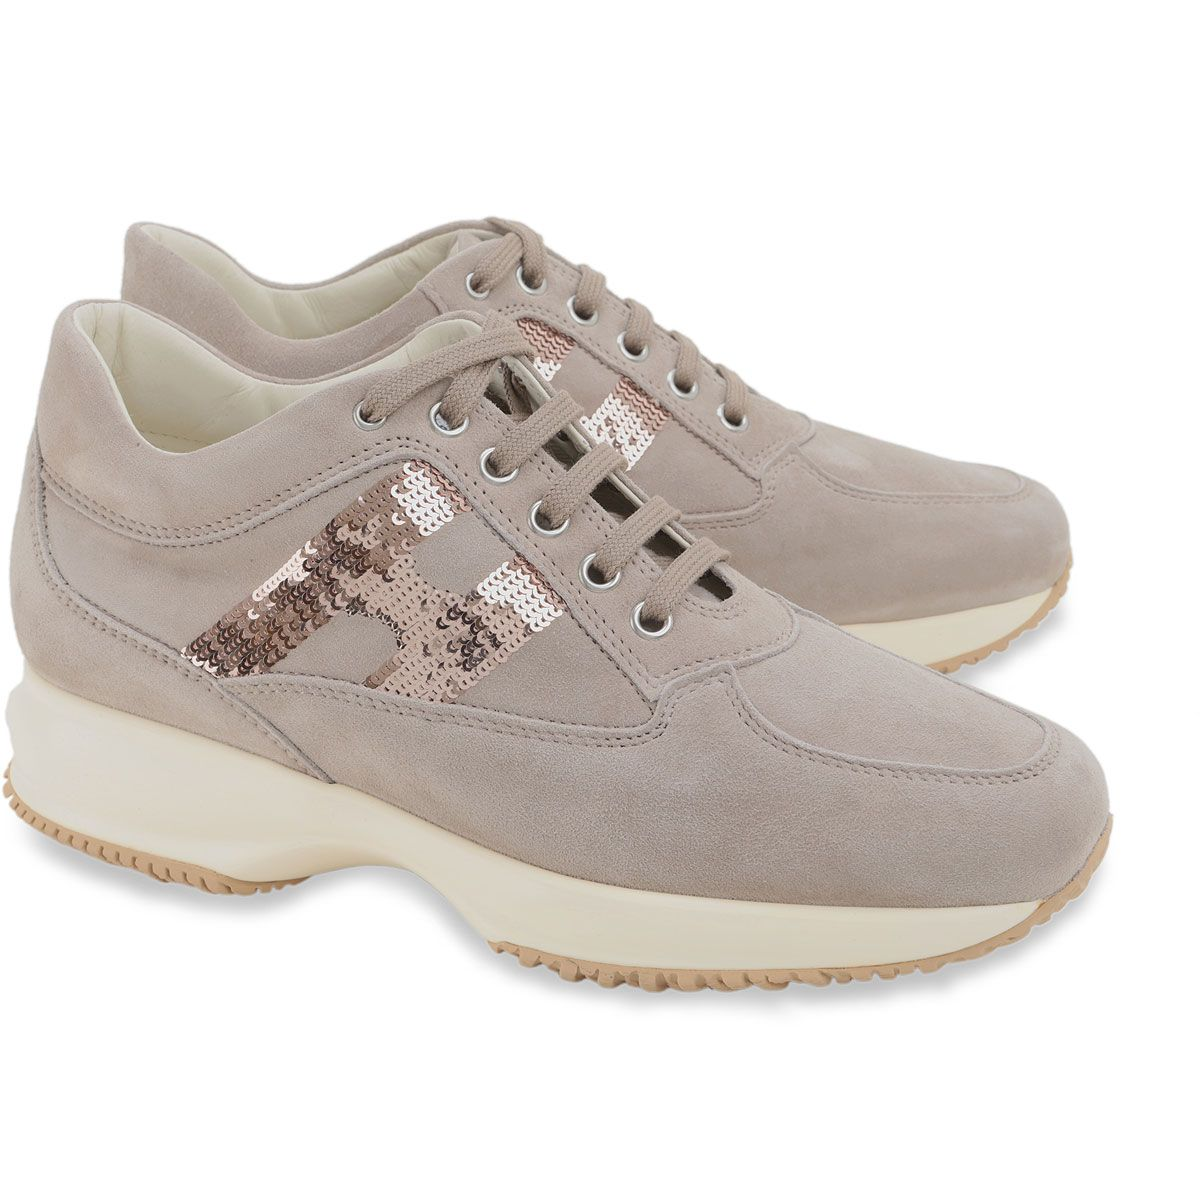 Hogan Shoes and Sneakers from the Latest Collection. Hogan Women s Shoes  are available online in a wide selection at the Raffaello Network Store. a6451cbfca9